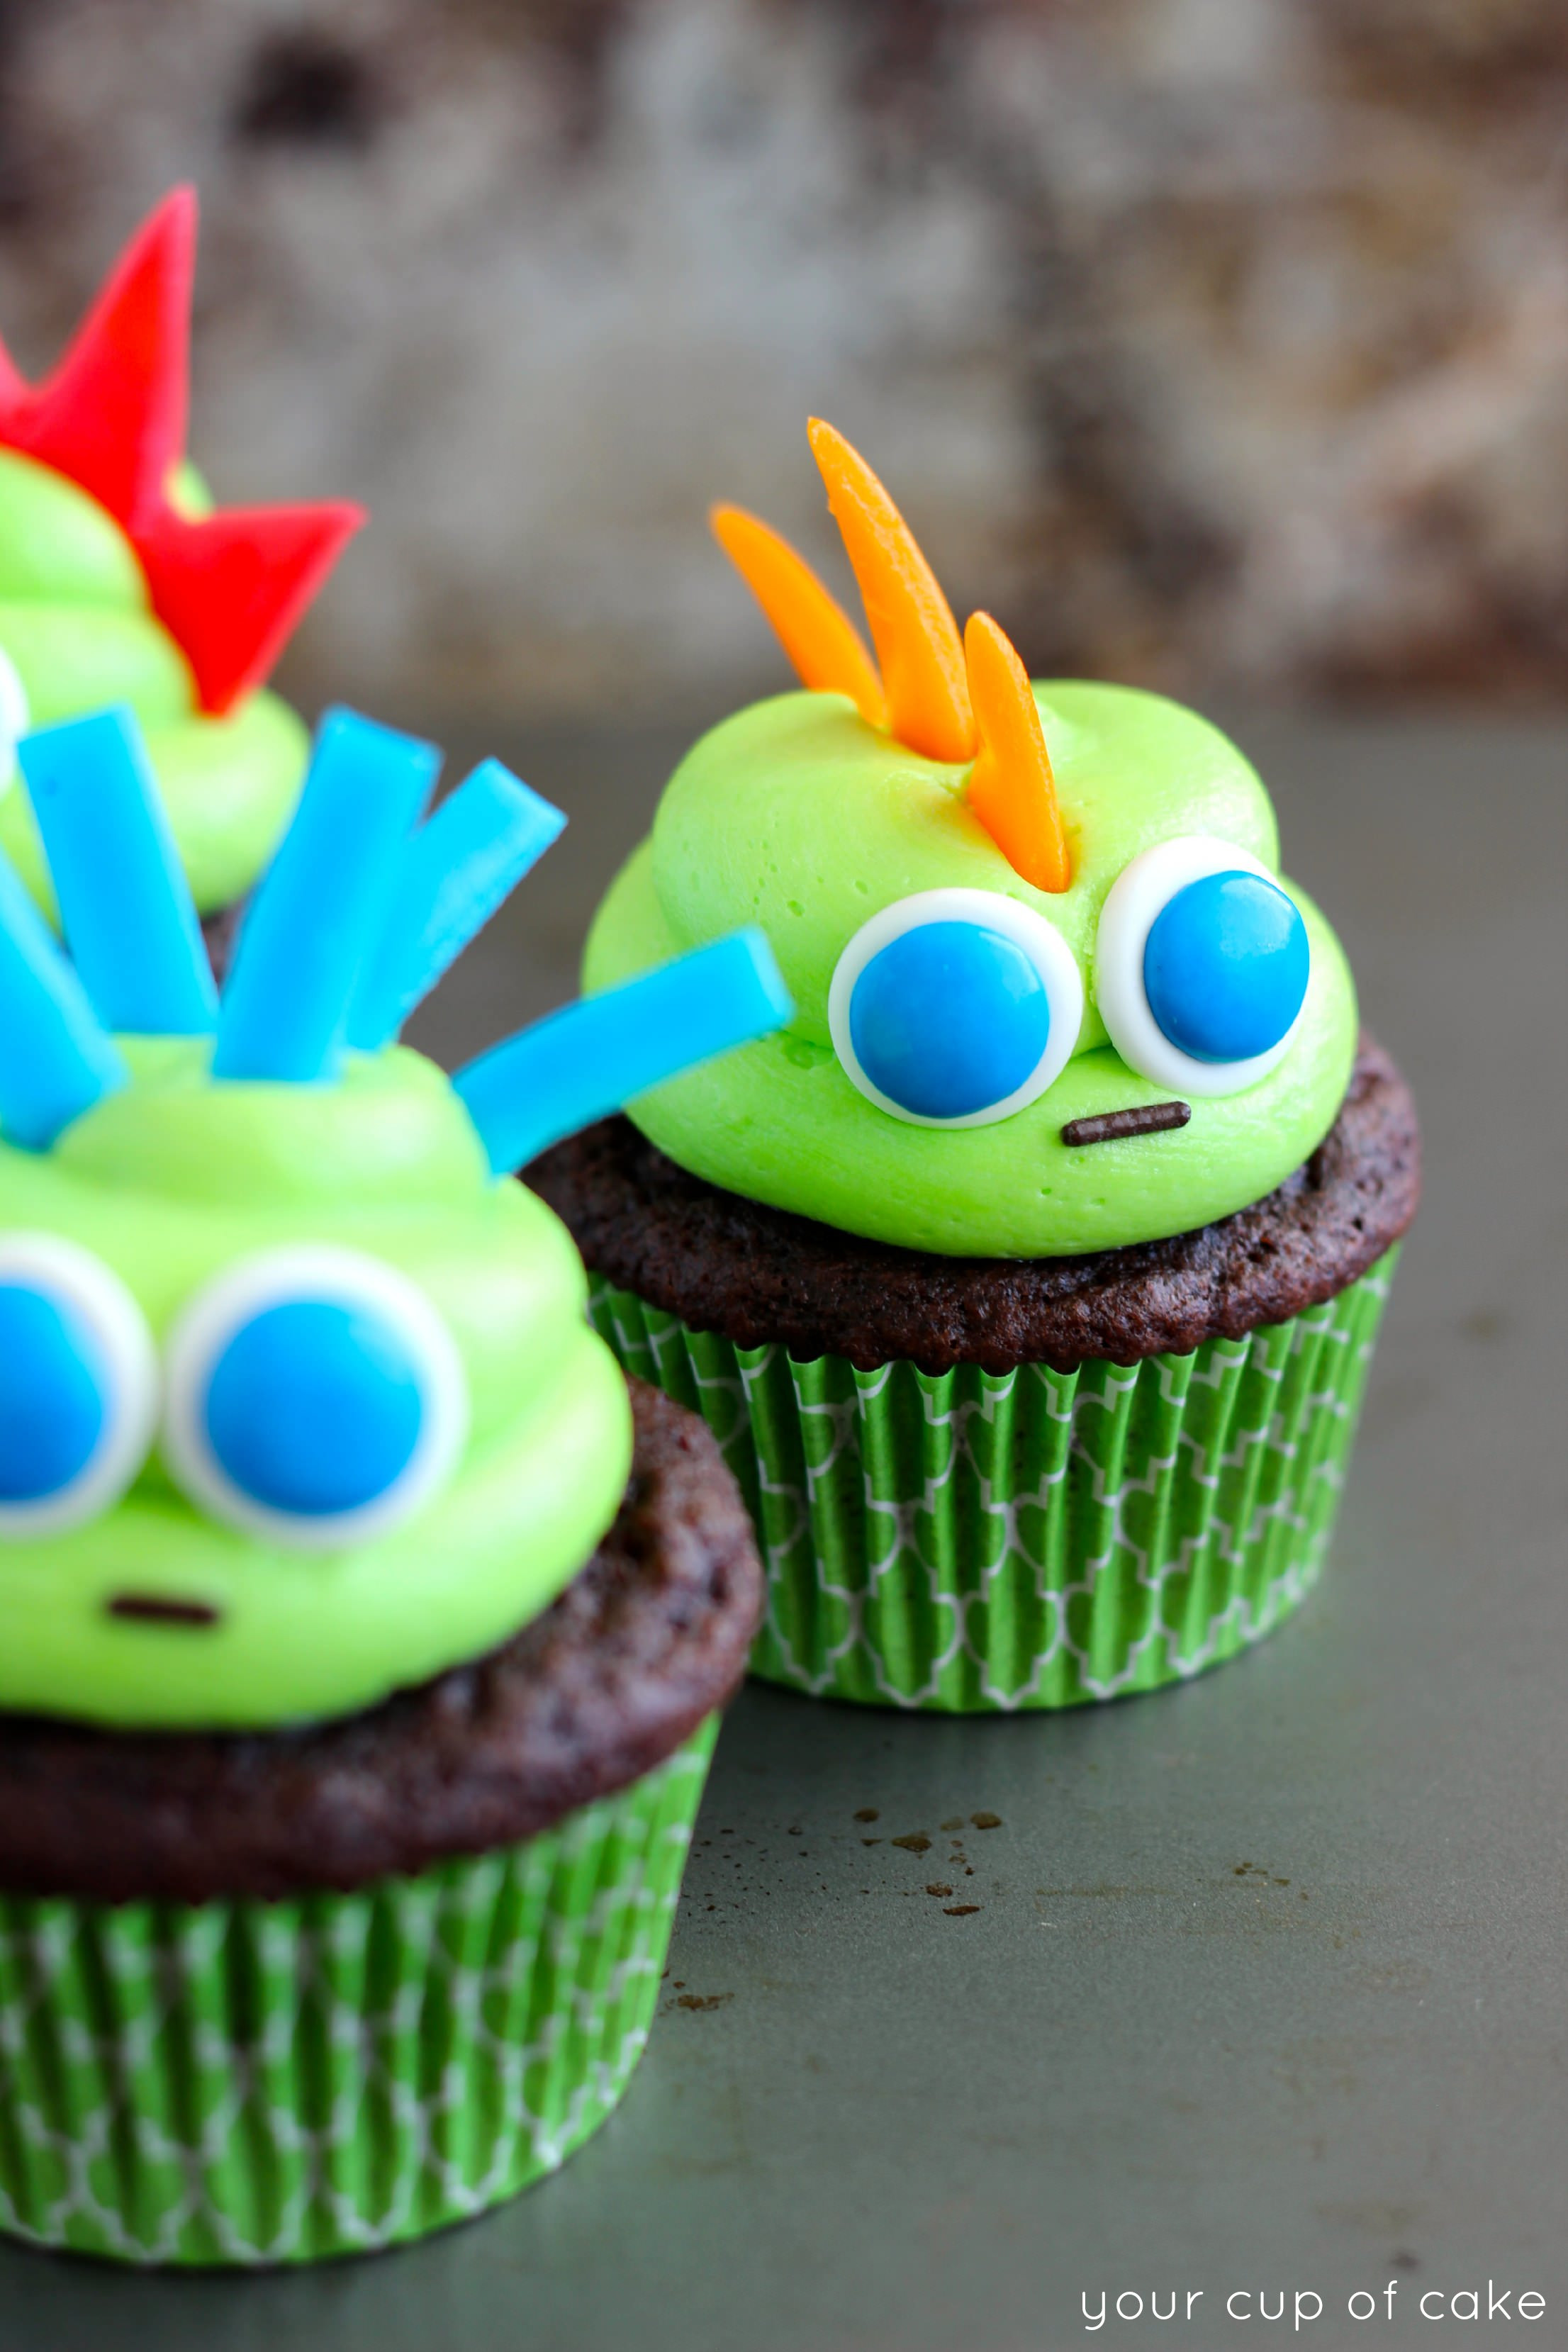 Cupcakes For Halloween  Easy Halloween Cupcake Ideas Your Cup of Cake